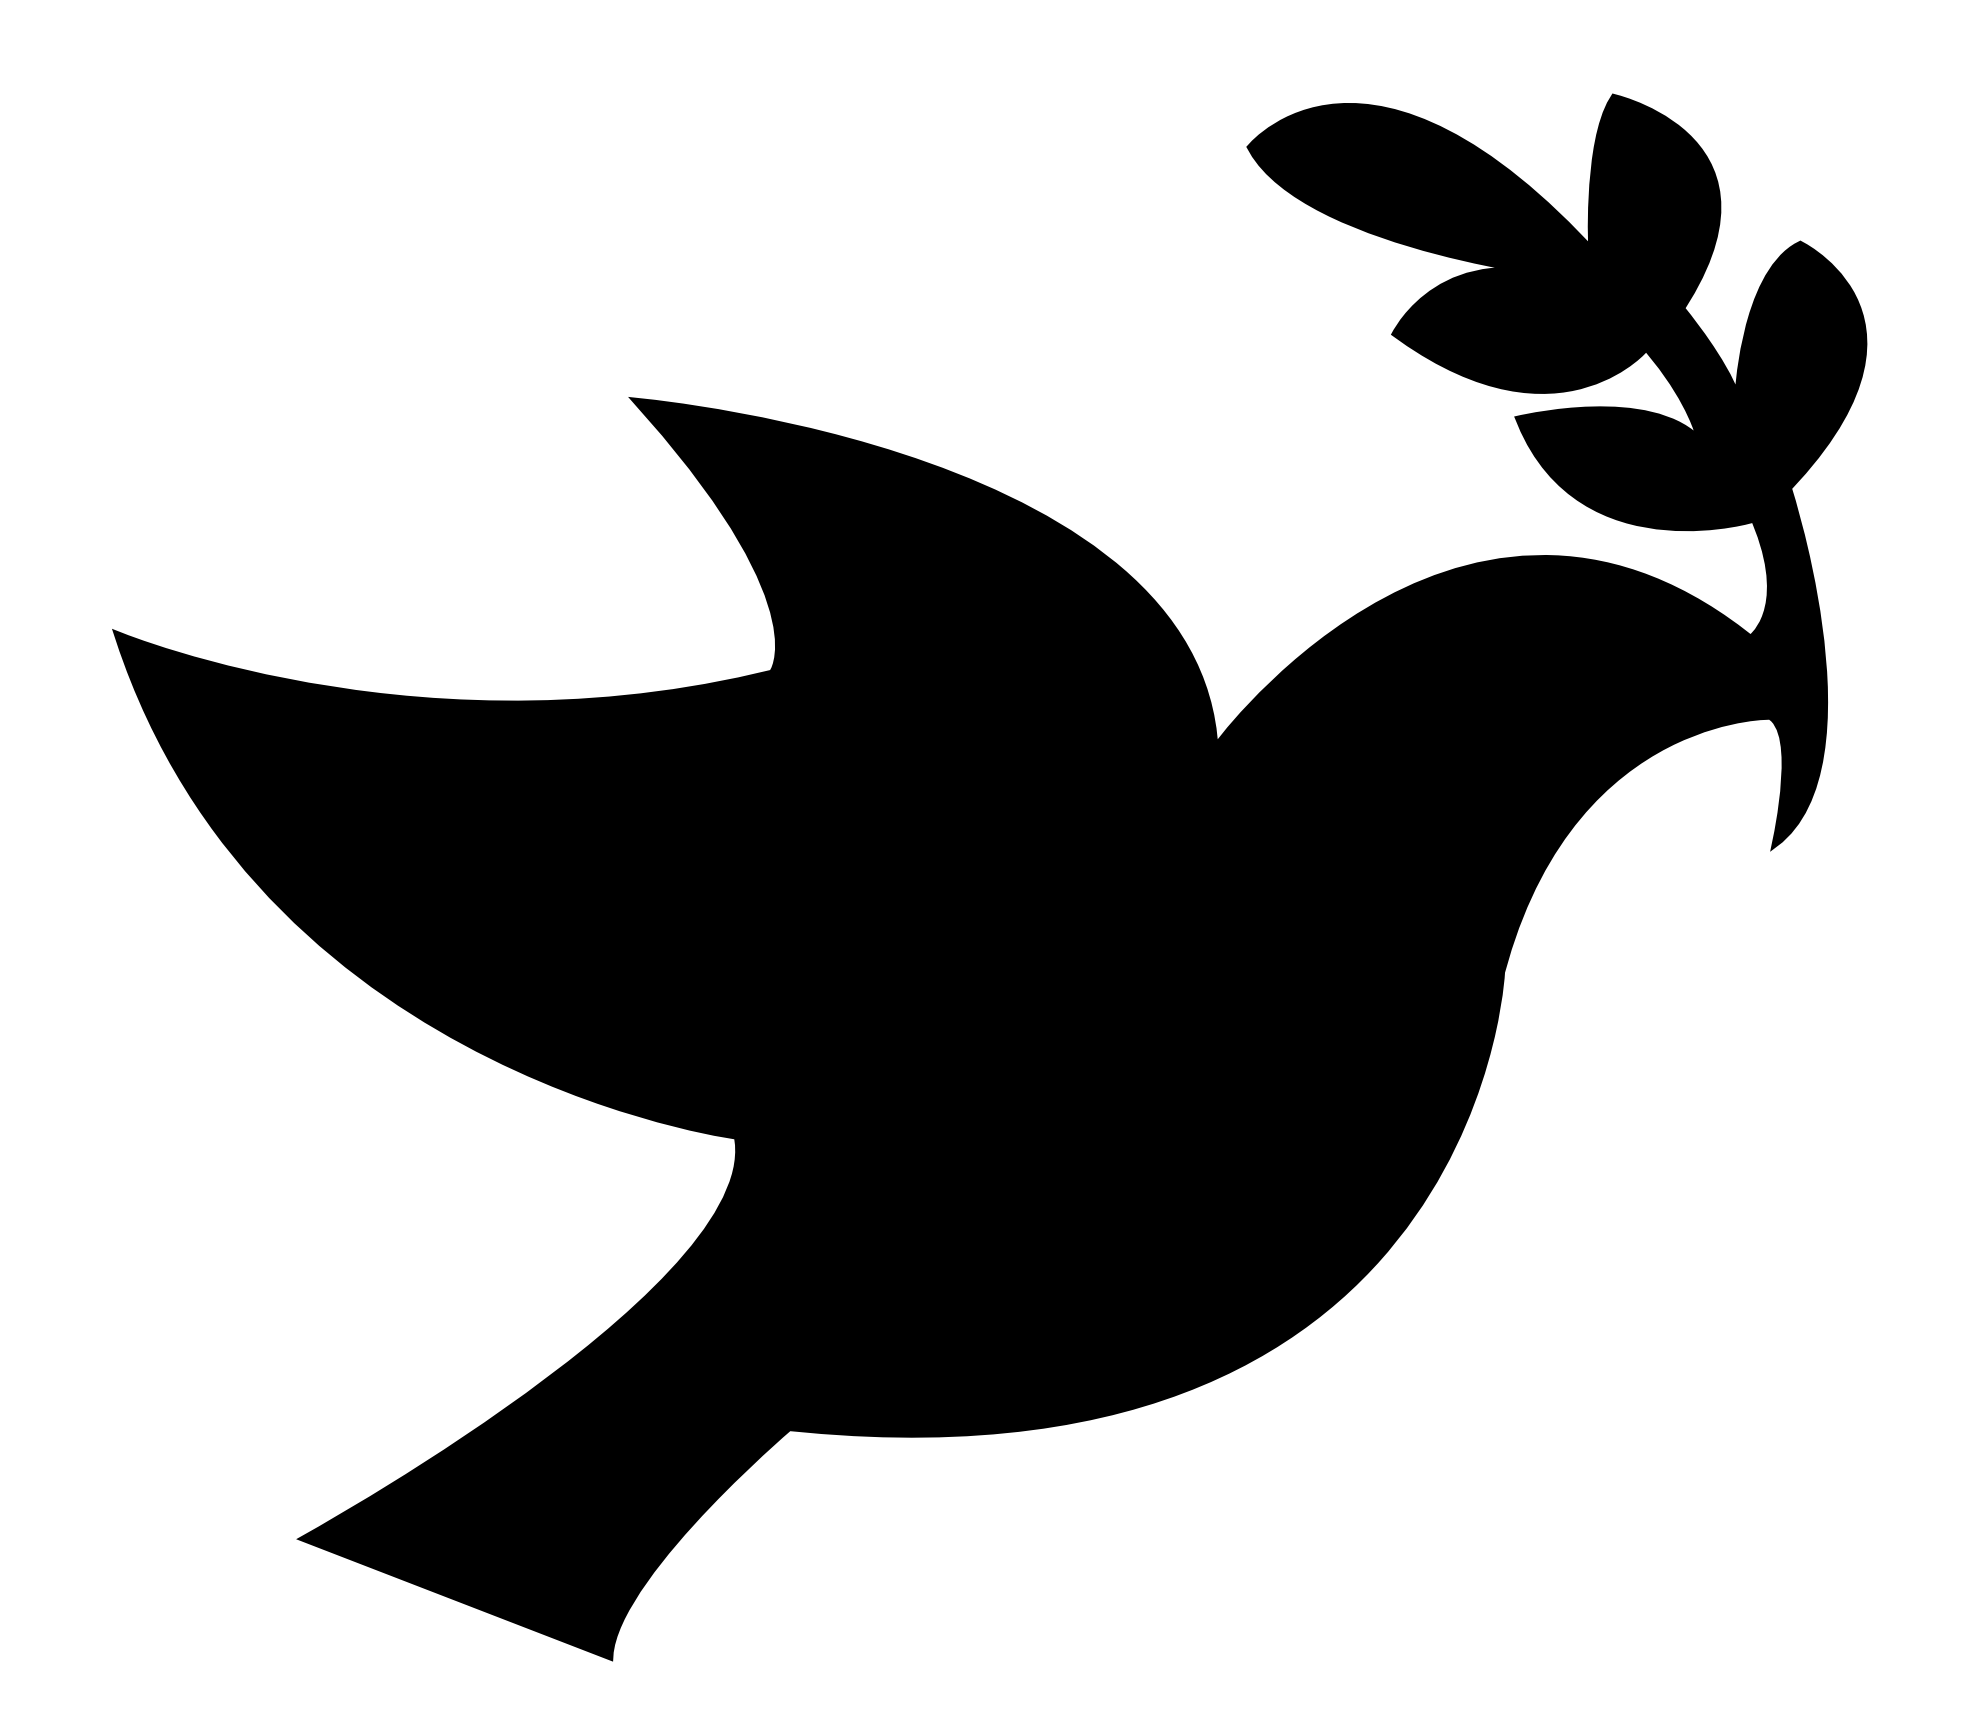 Peace dove transparent png stickpng religion christianity symbols biocorpaavc